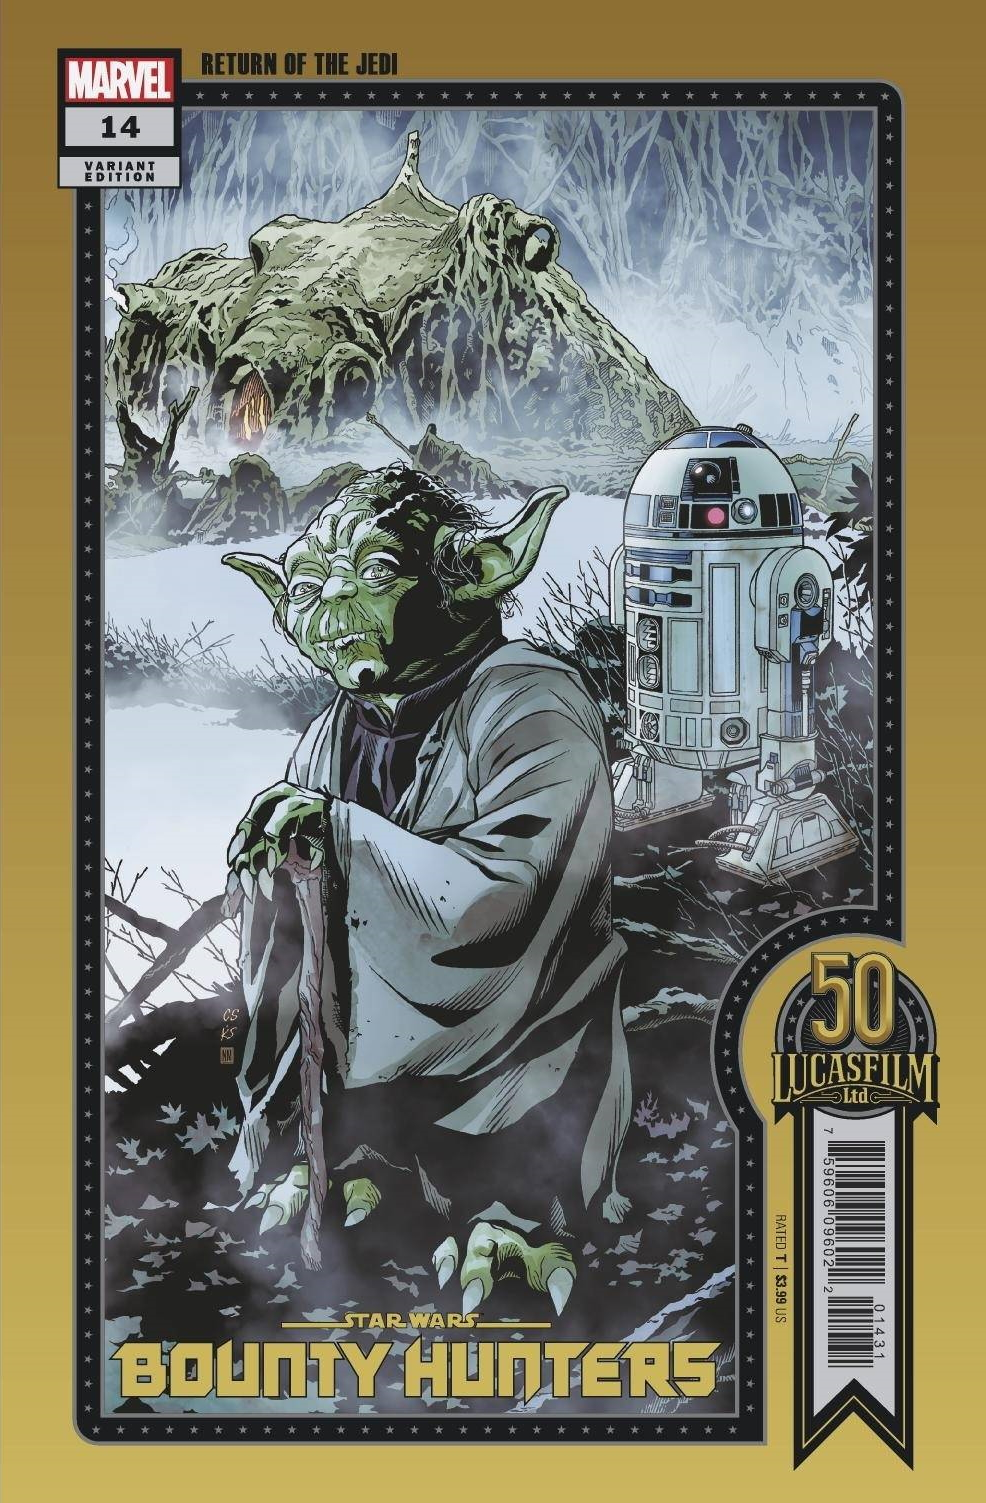 Bounty Hunters #14 (Chris Sprouse Lucasfilm 50th Anniversary Variant Cover) (07.07.2021)